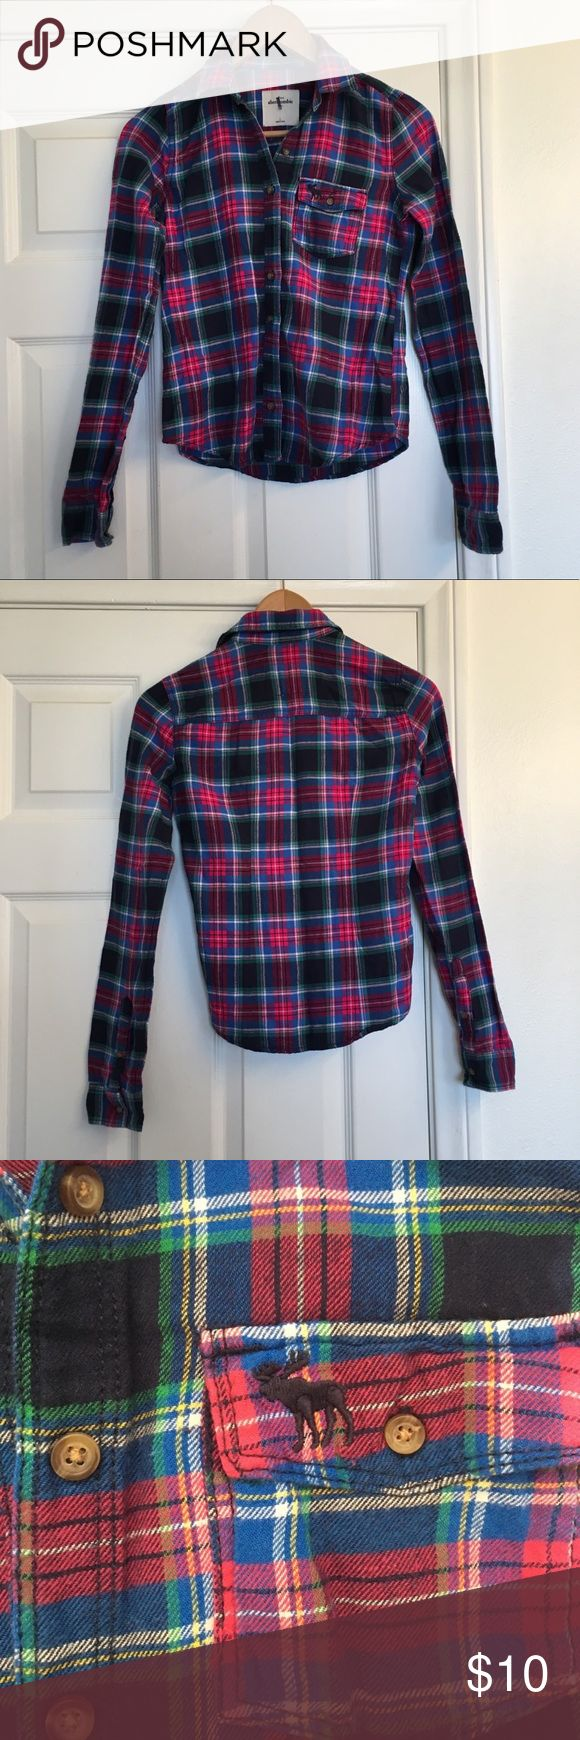 Abercrombie Girls Flannel Plaid Button Up Shirt Abercrombie kids plaid button up shirt, pocket in the chest, size large, in great used condition, line through the tag, Armpit to armpit 15 inches, length 21.5 inches Abercombie Kids Shirts & Tops Button Down Shirts